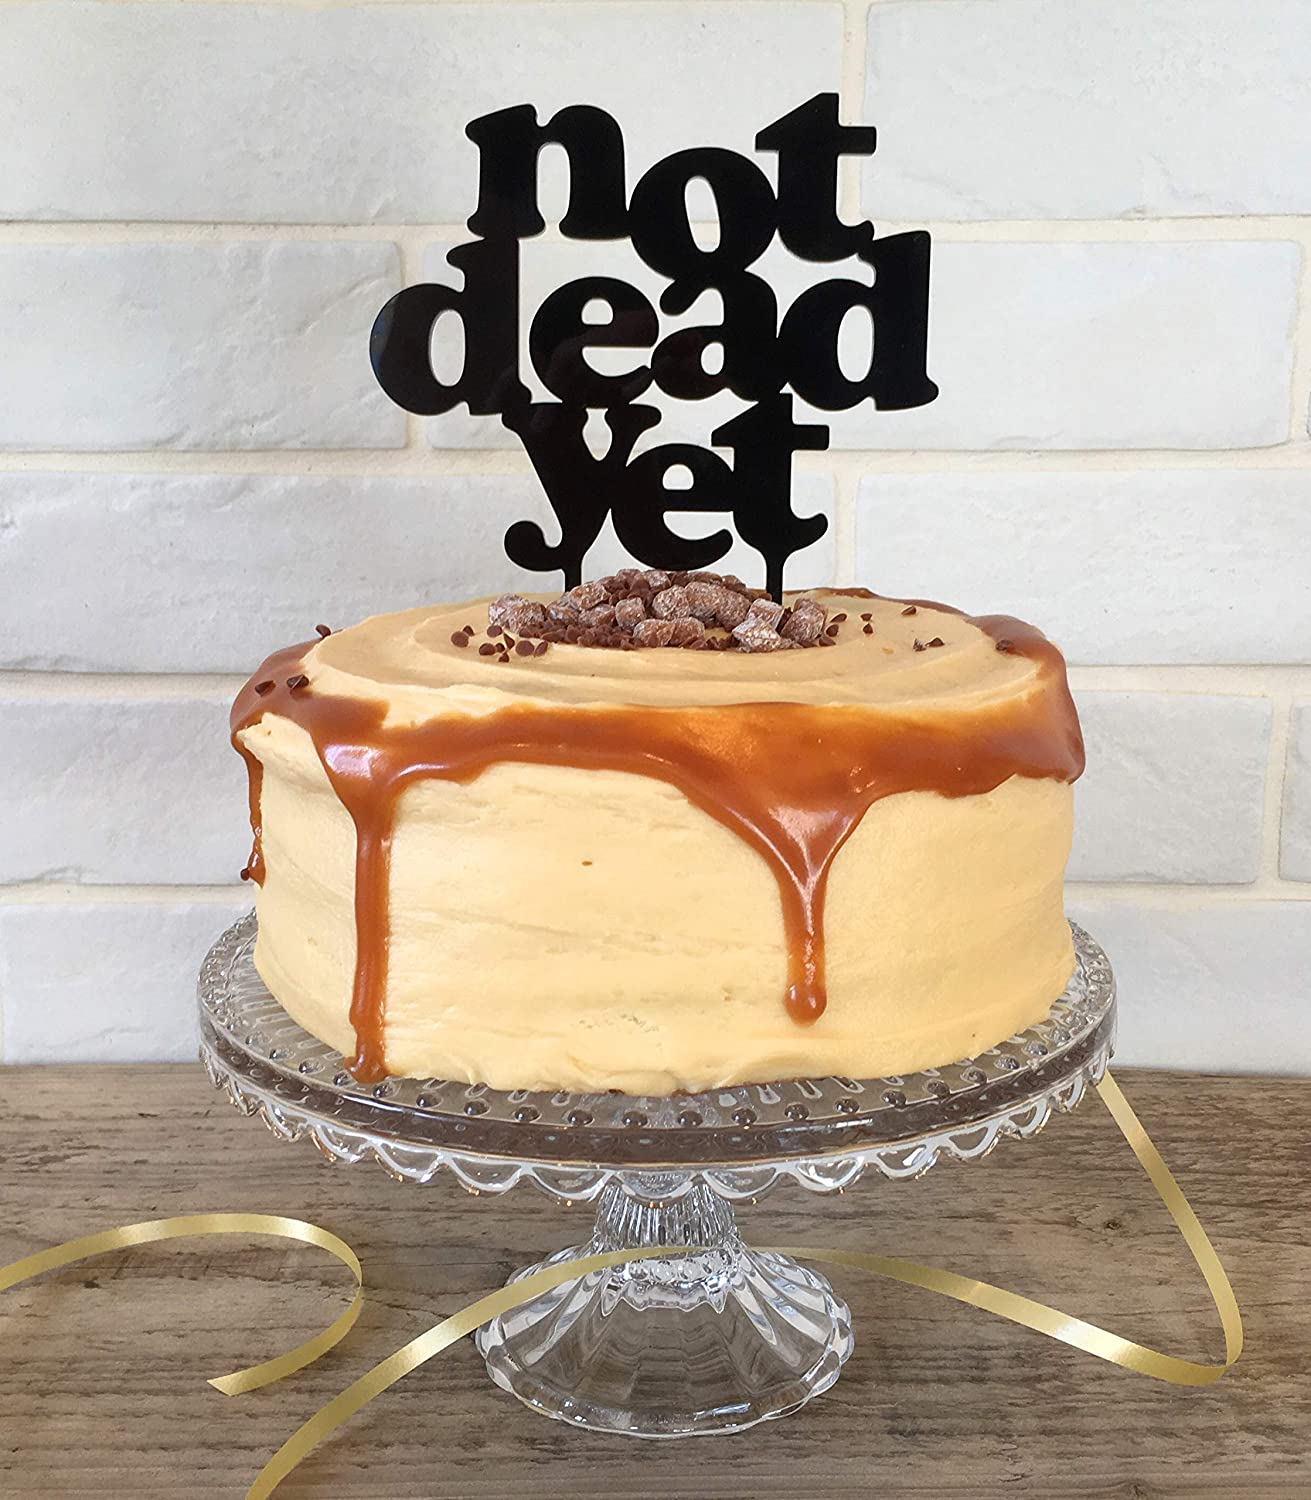 Cake Topper Funny Birthday Cake Decoration In Quality Black Acrylic Plastic Saying Not Dead Yet Amazon Co Uk Kitchen Home